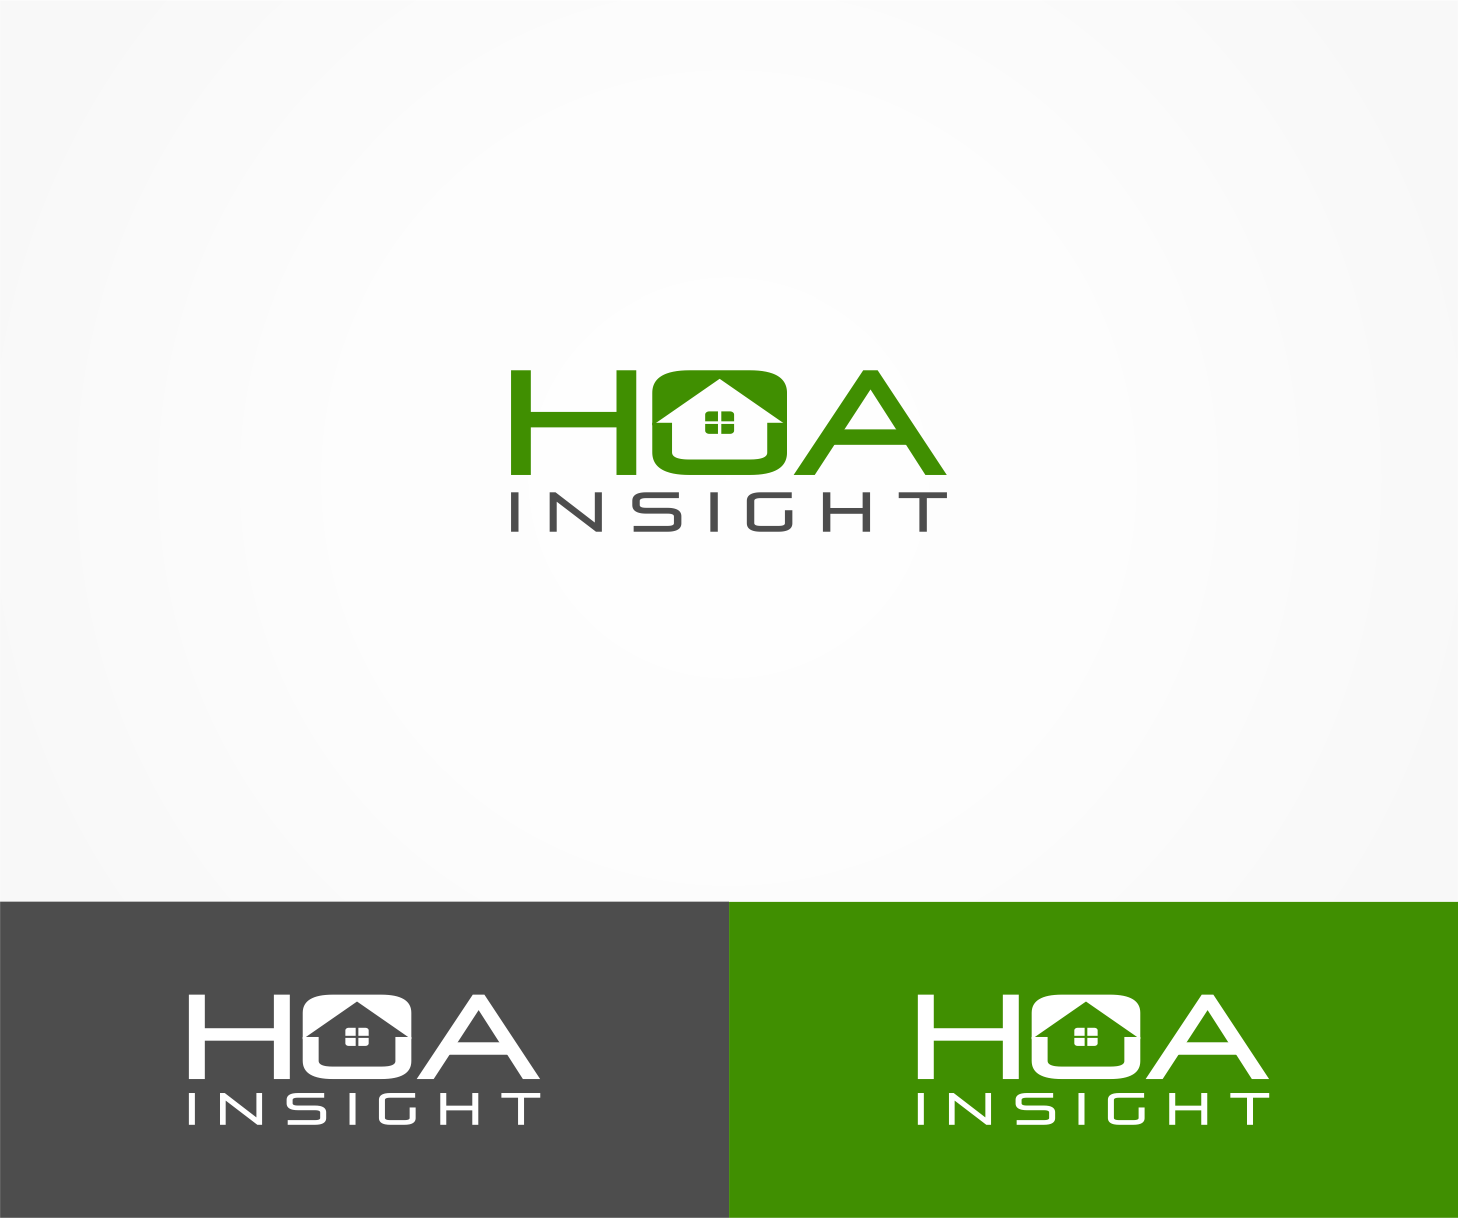 Help HOA insights with a new logo